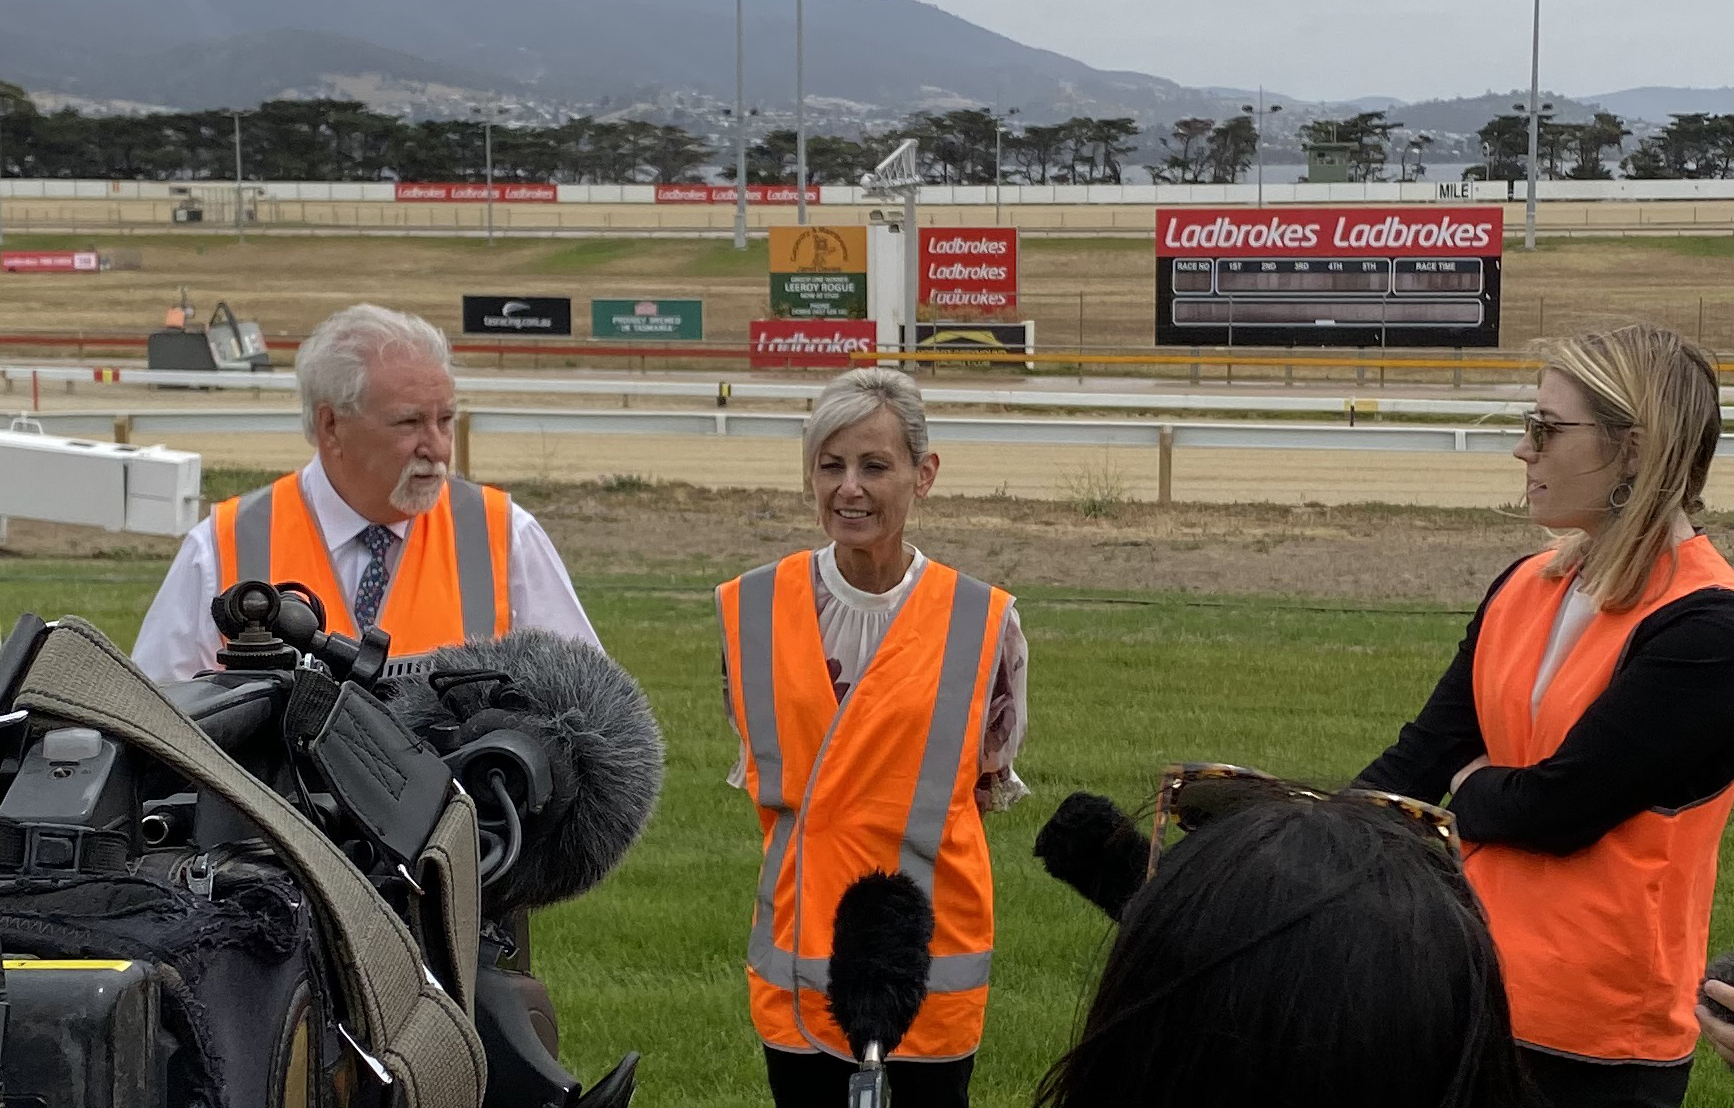 Media Release from Elise Archer Minister for Racing – 7 January 2020